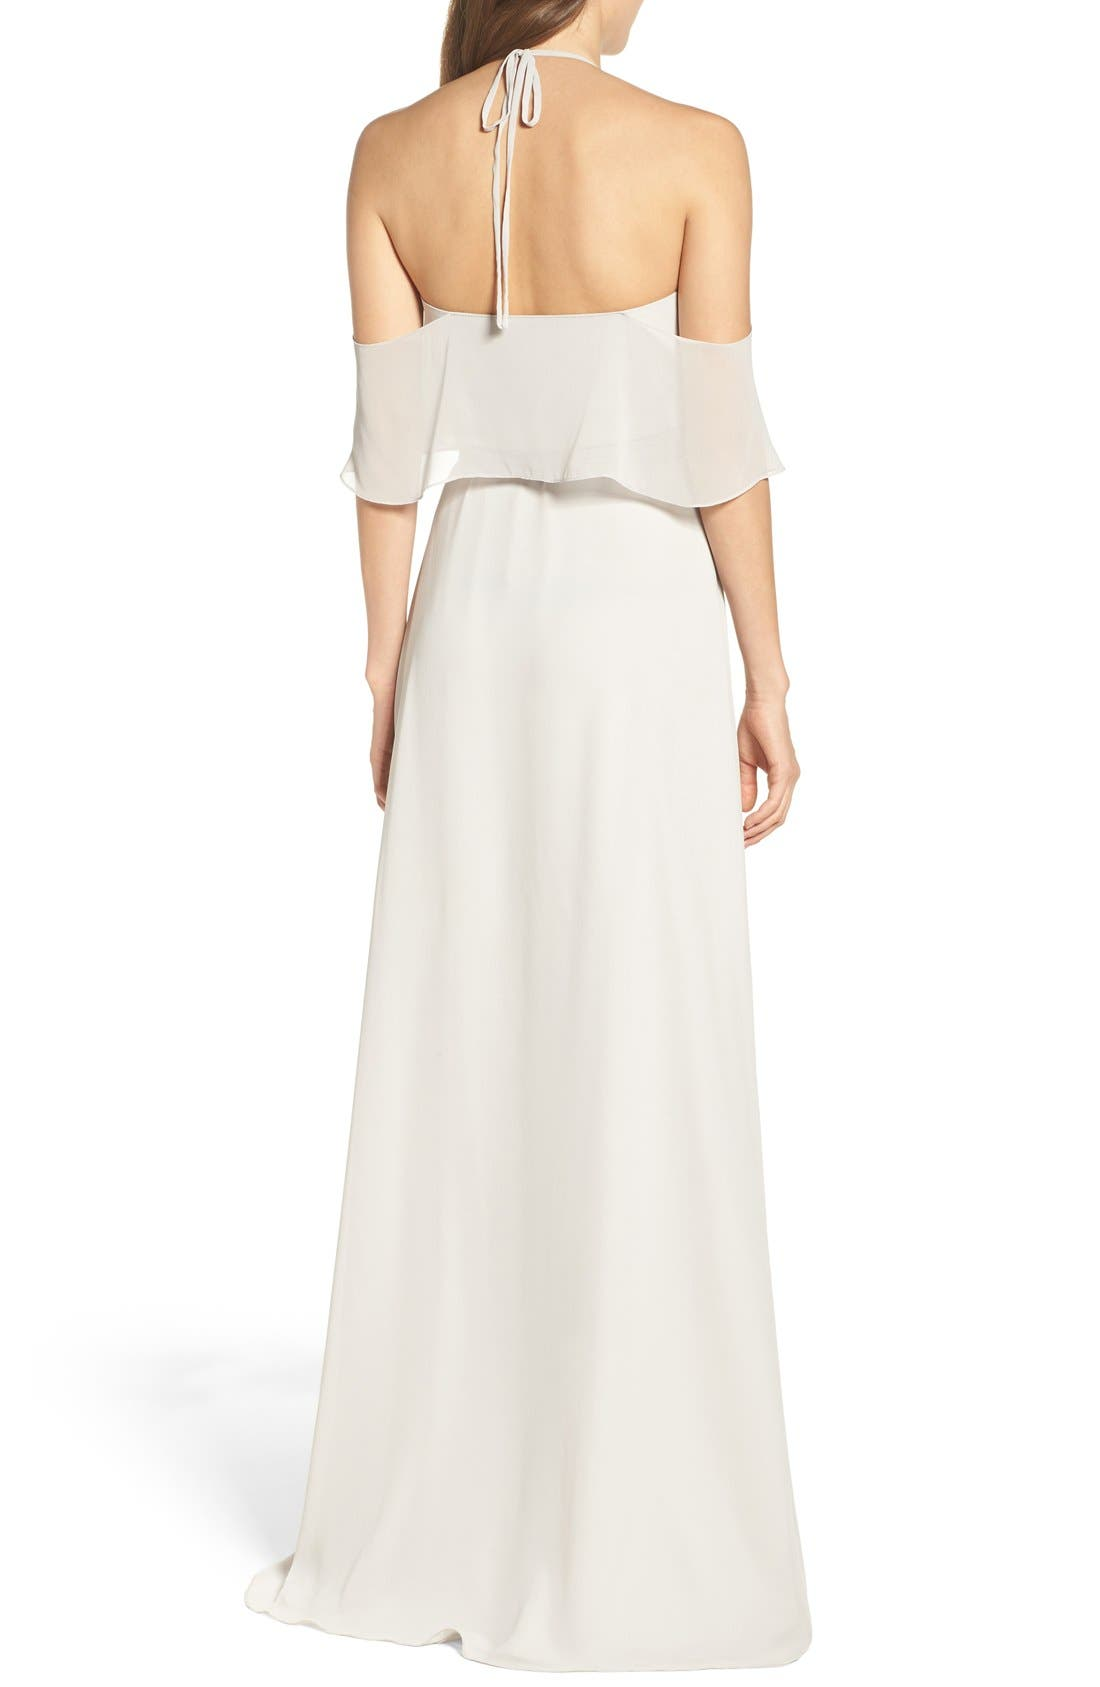 Joanna august ceremony bridesmaid dresses nordstrom ombrellifo Image collections